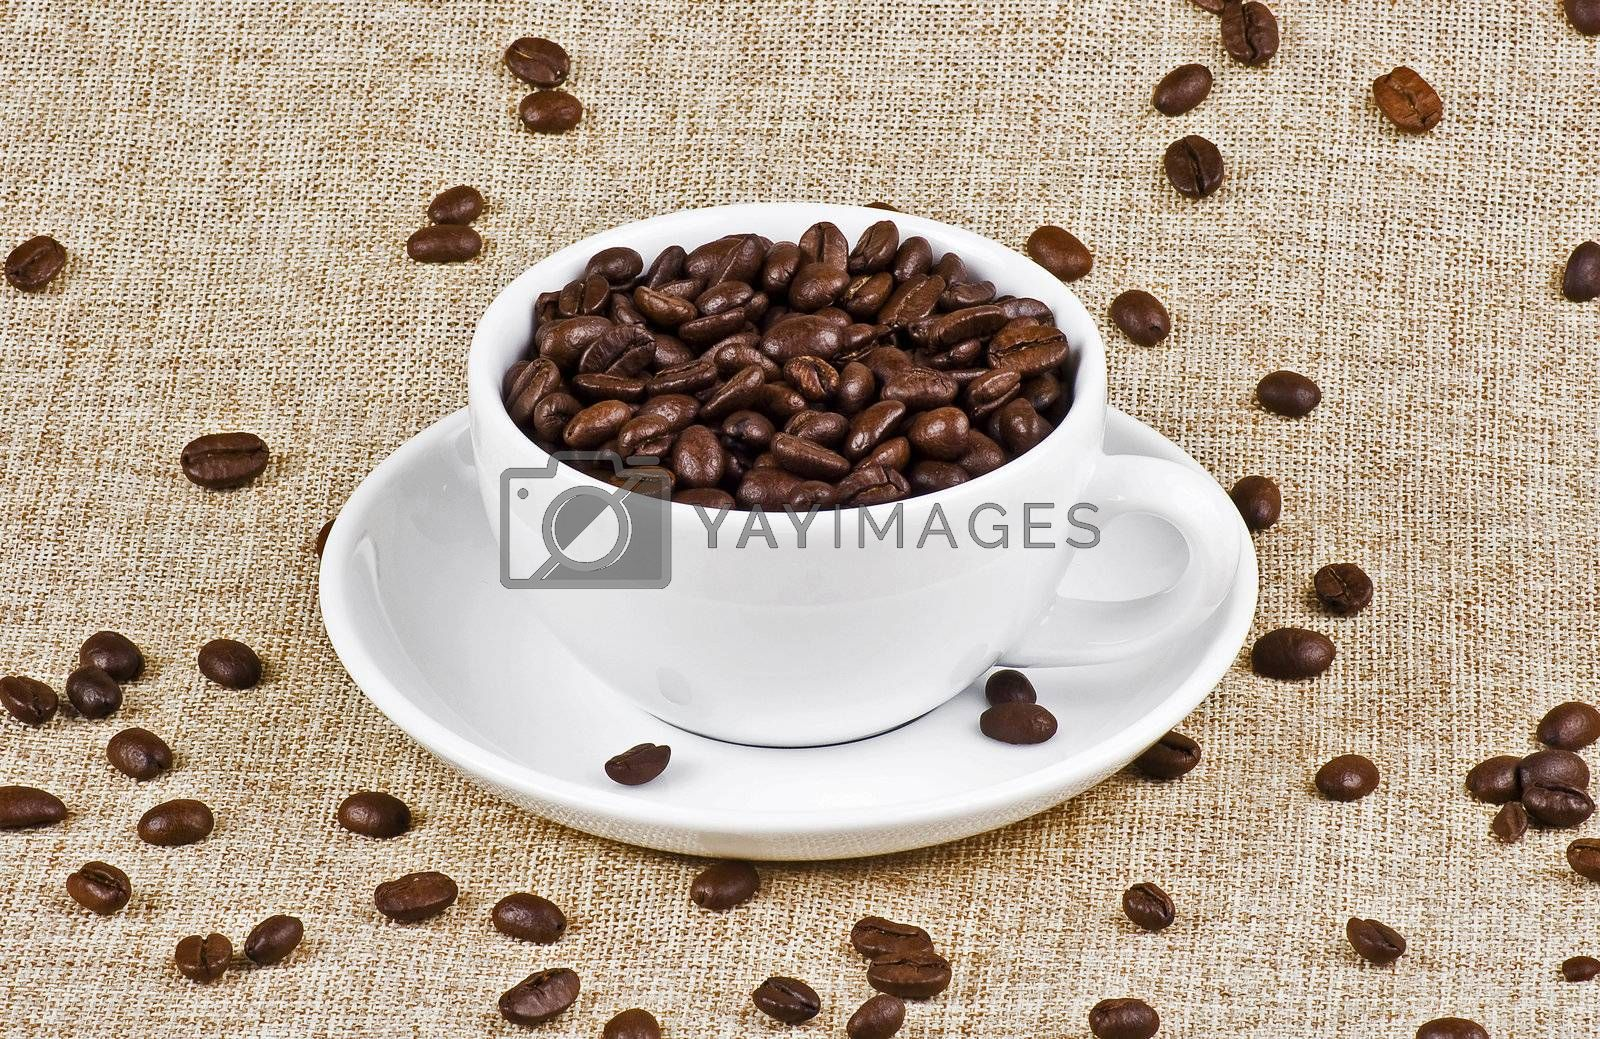 Cup of coffe beans by caldix